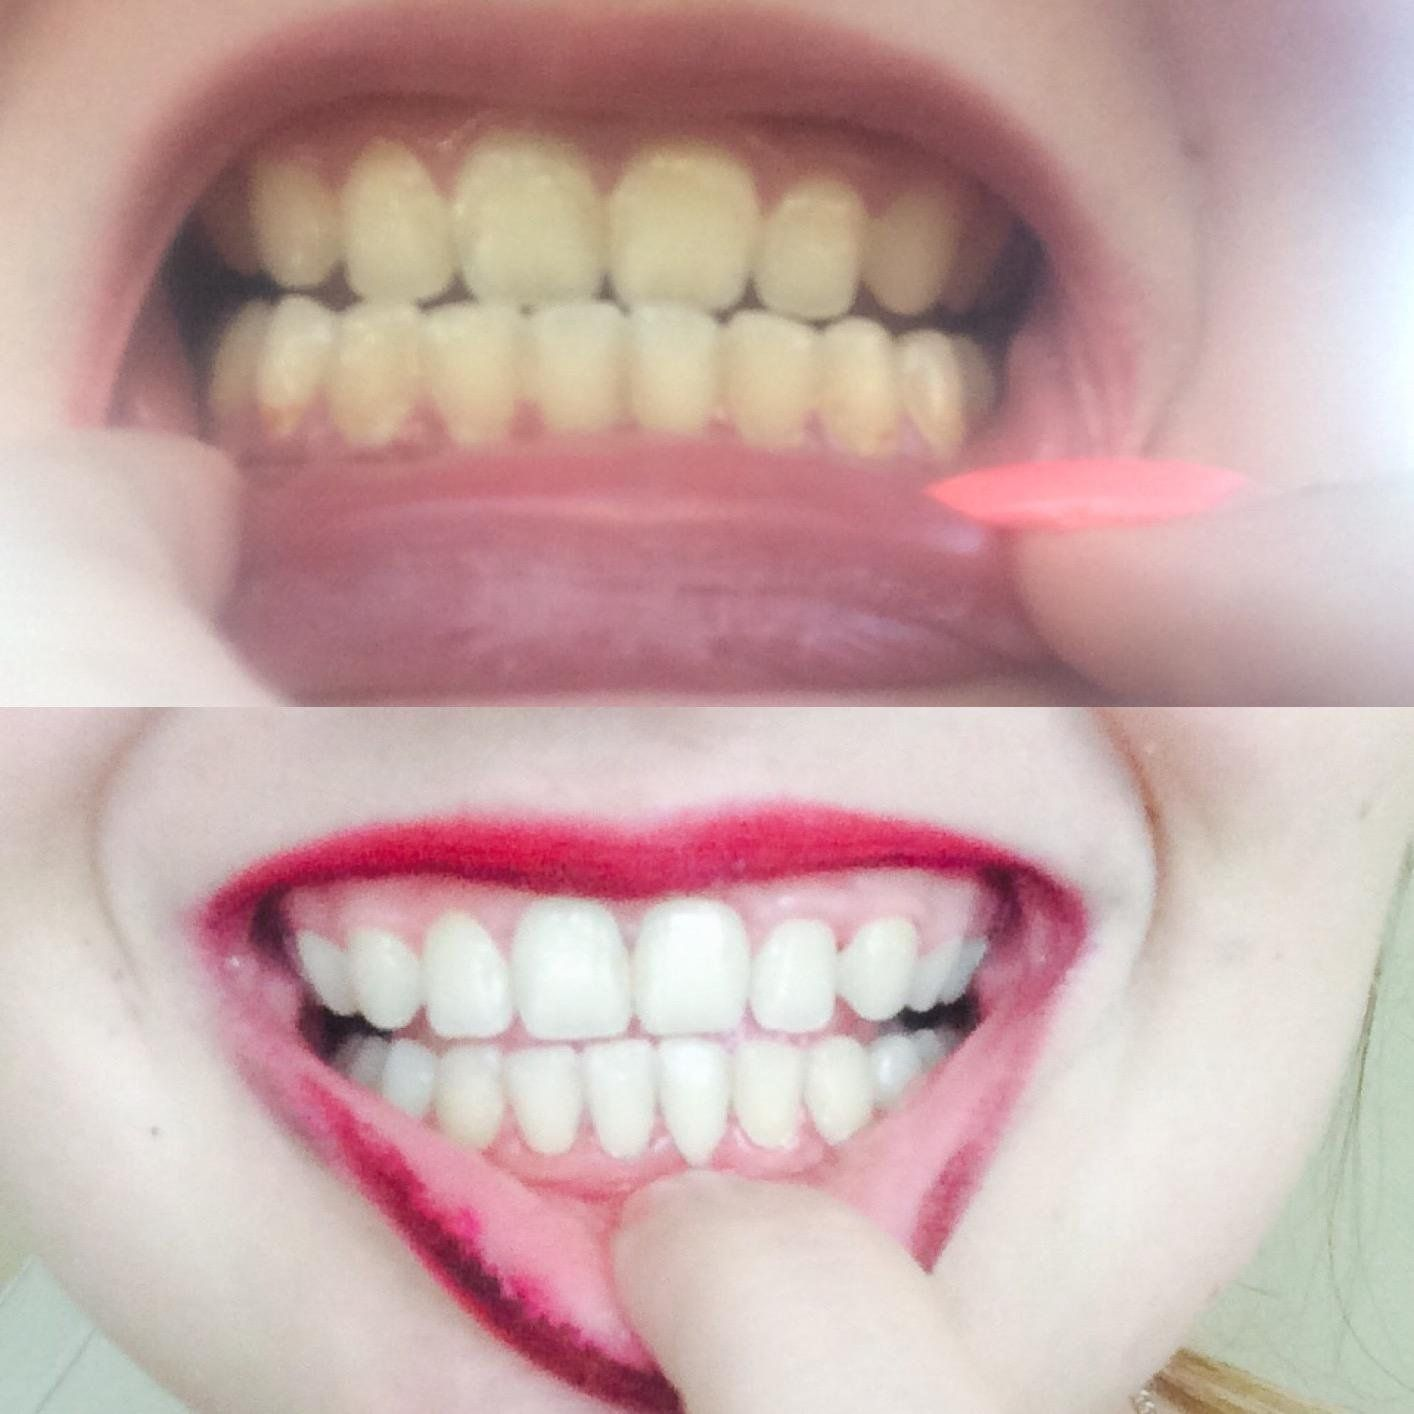 Tooth whitening paste: reviews 64